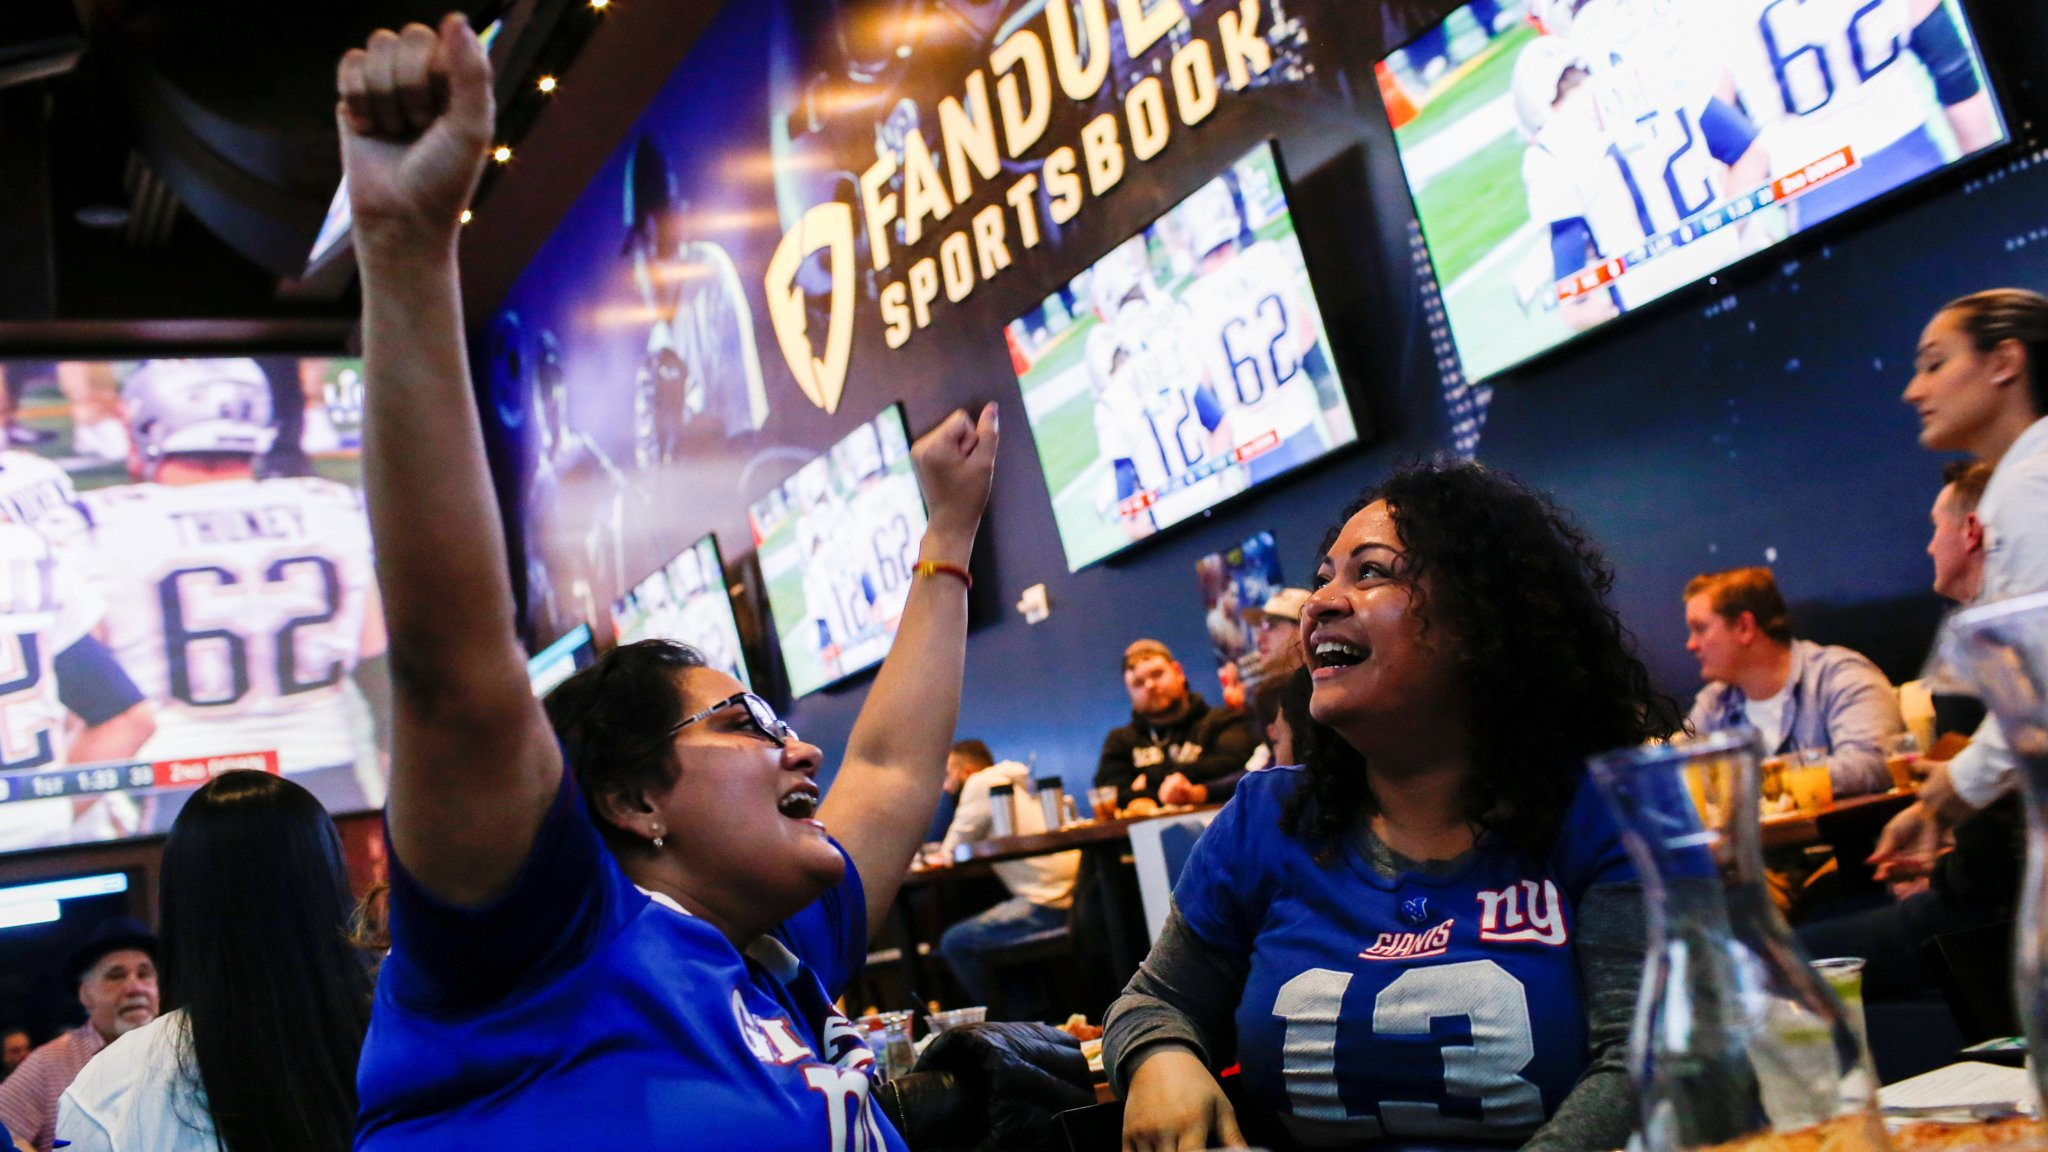 A bet on America: the sports gambling gold rush | Financial Times